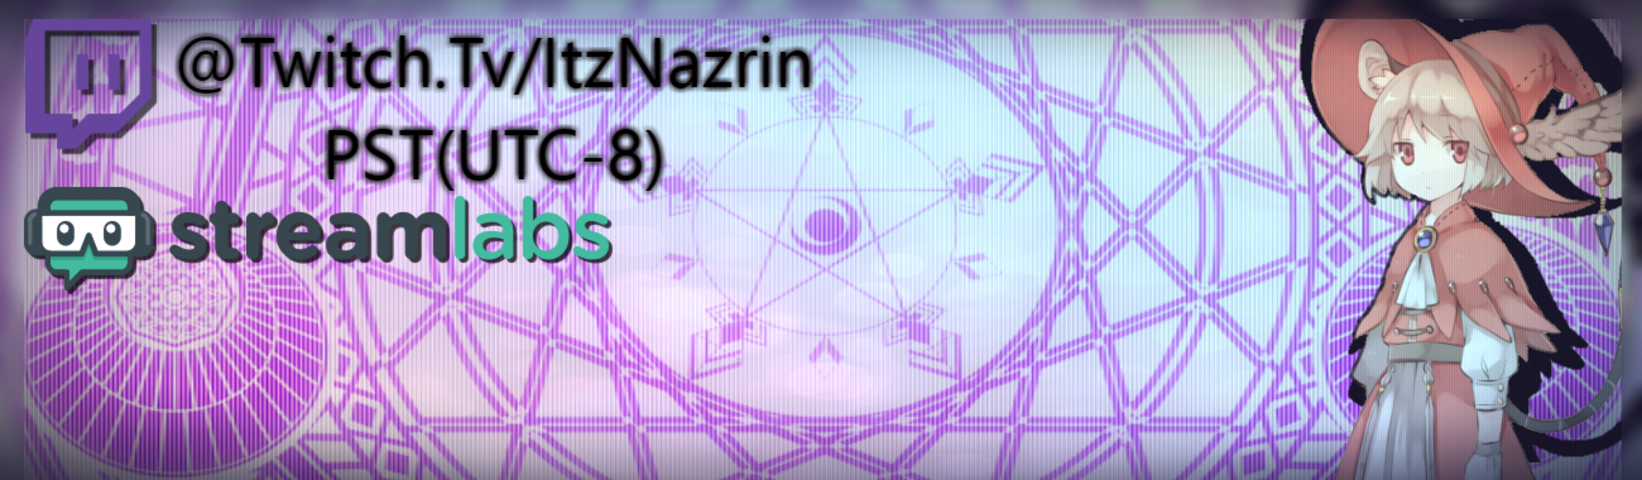 itznazrin - Live】PikoLive - Twitch, Game, Entertainment, Video